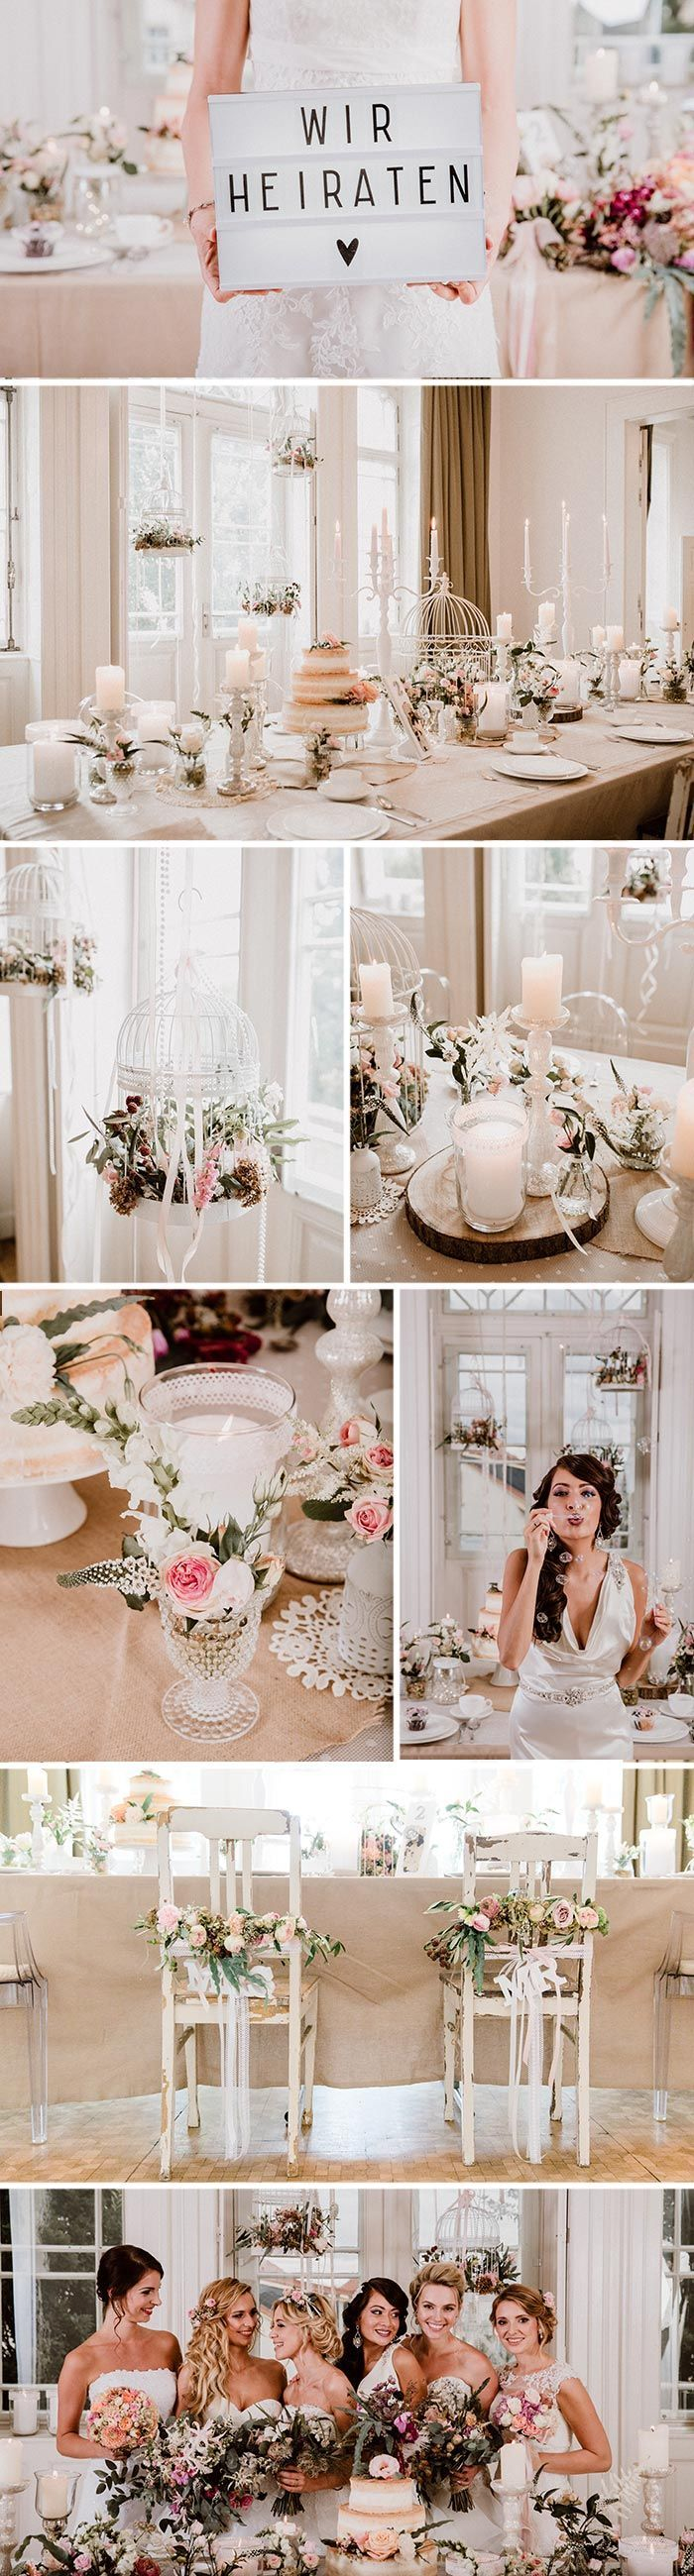 Decoration Ideas for the – Bridal Shoot in Winning Winery